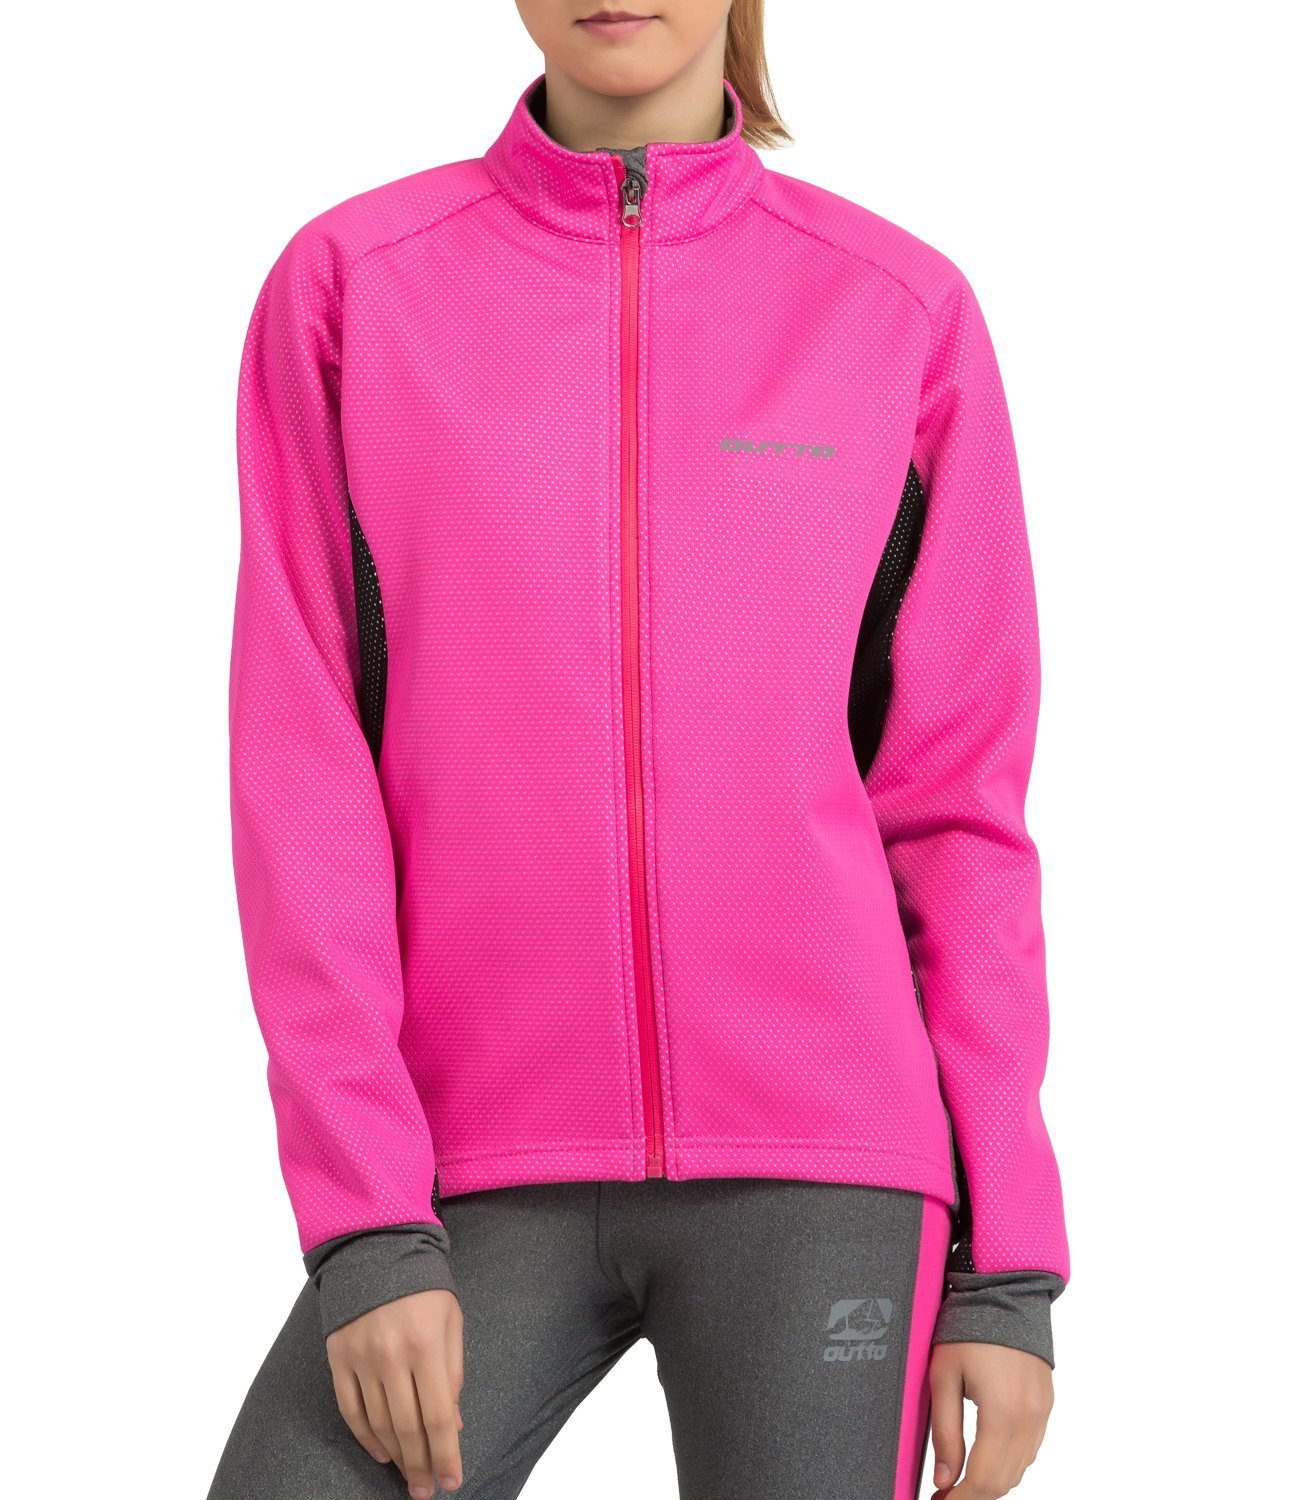 Outto Women's Winter Cycling Jacket Fleece Windproof Thermal Softshell(X-Large,Pink/Black) by Outto